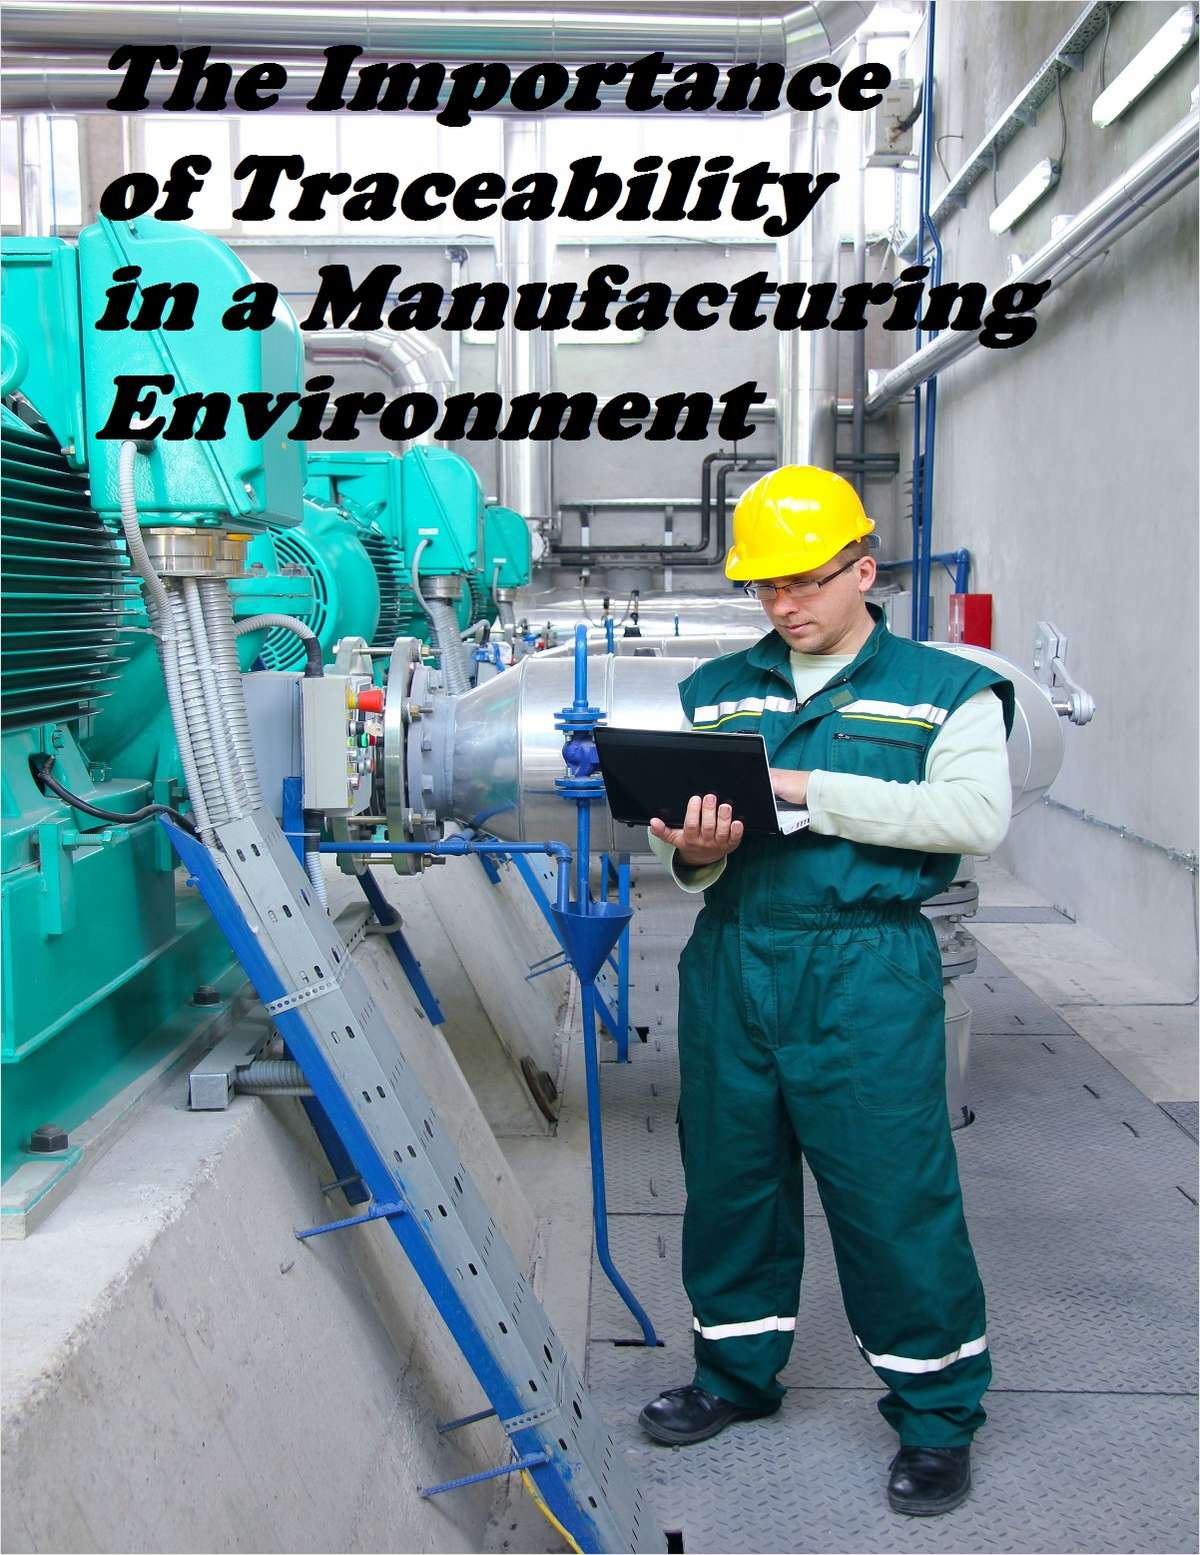 The Importance of Traceability in a Manufacturing Environment